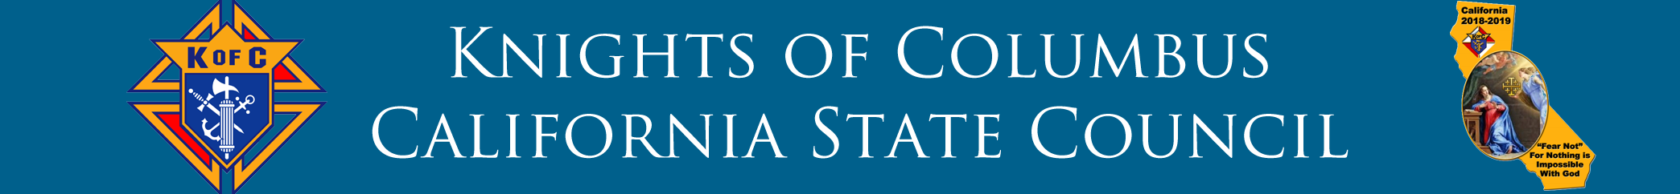 Knights of Columbus – California State Council